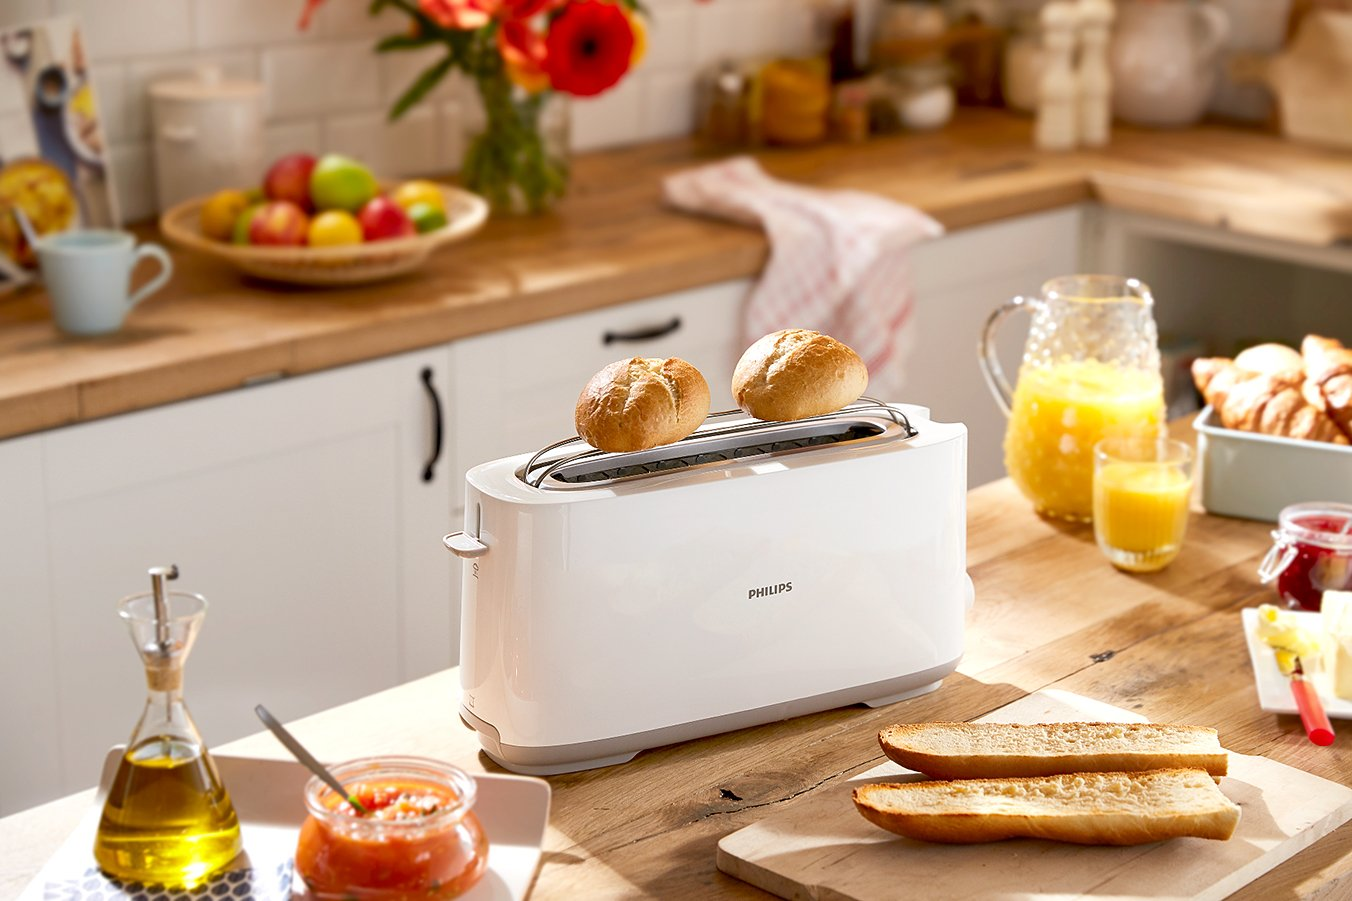 Philips Daily HD2590/00 Tostador